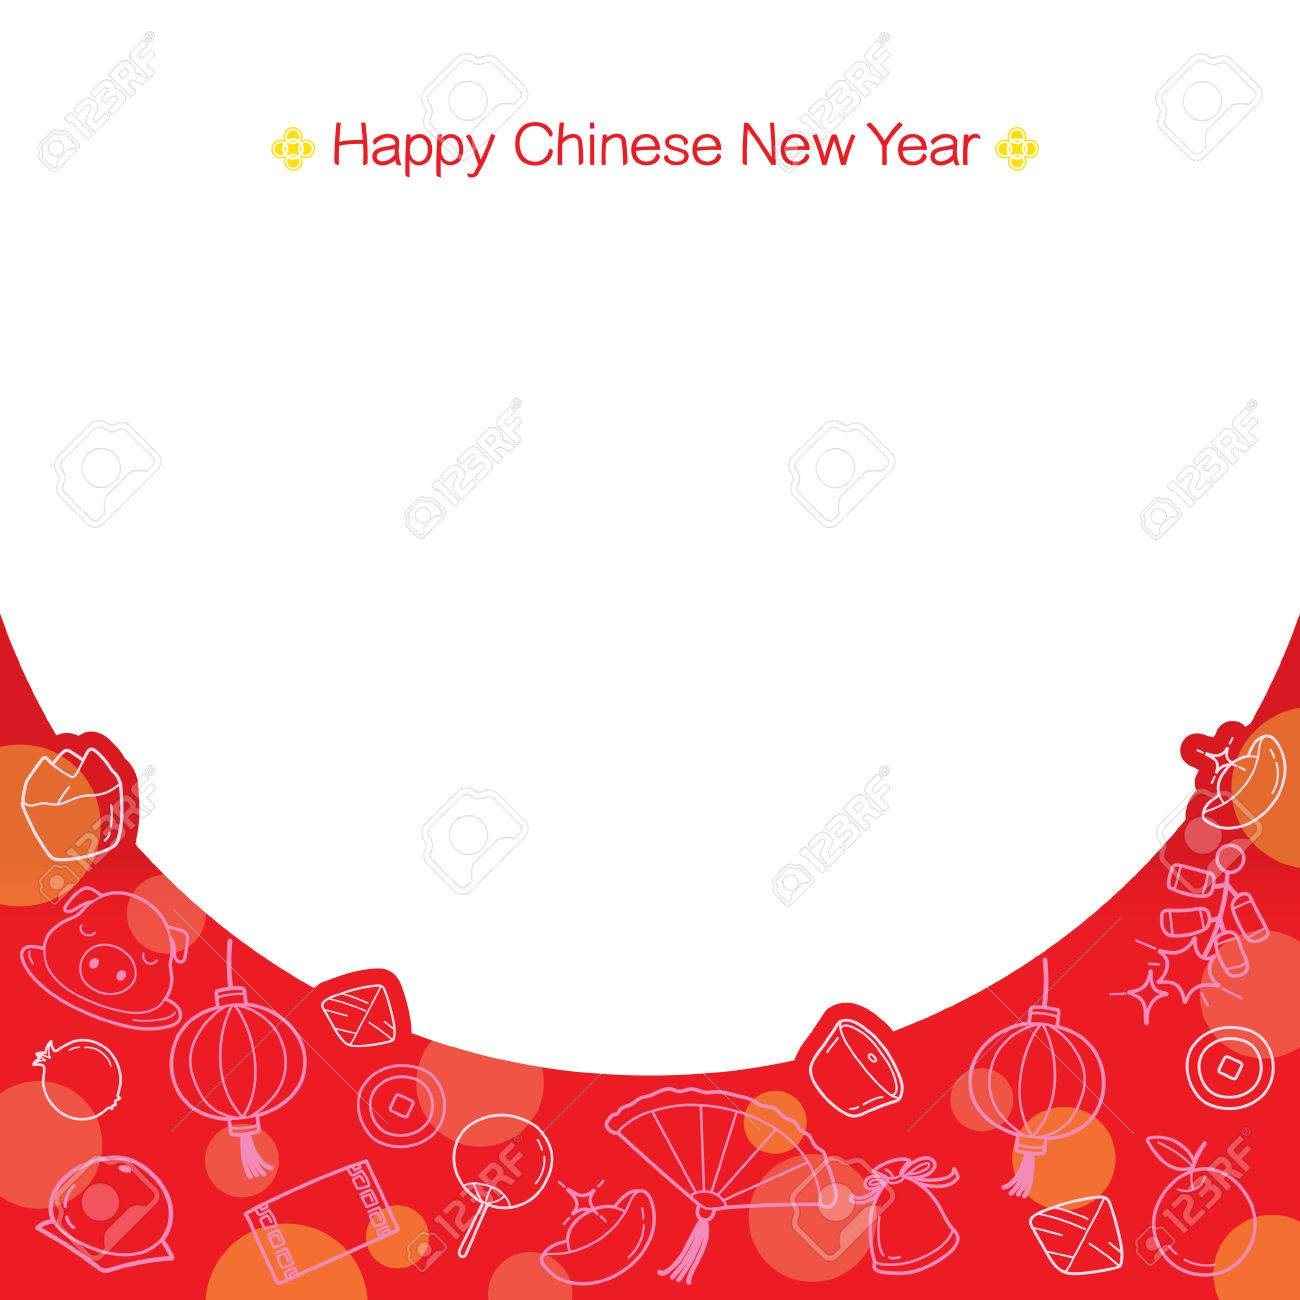 Chinese New Year Frame With Outline Icons , Traditional Celebration ...